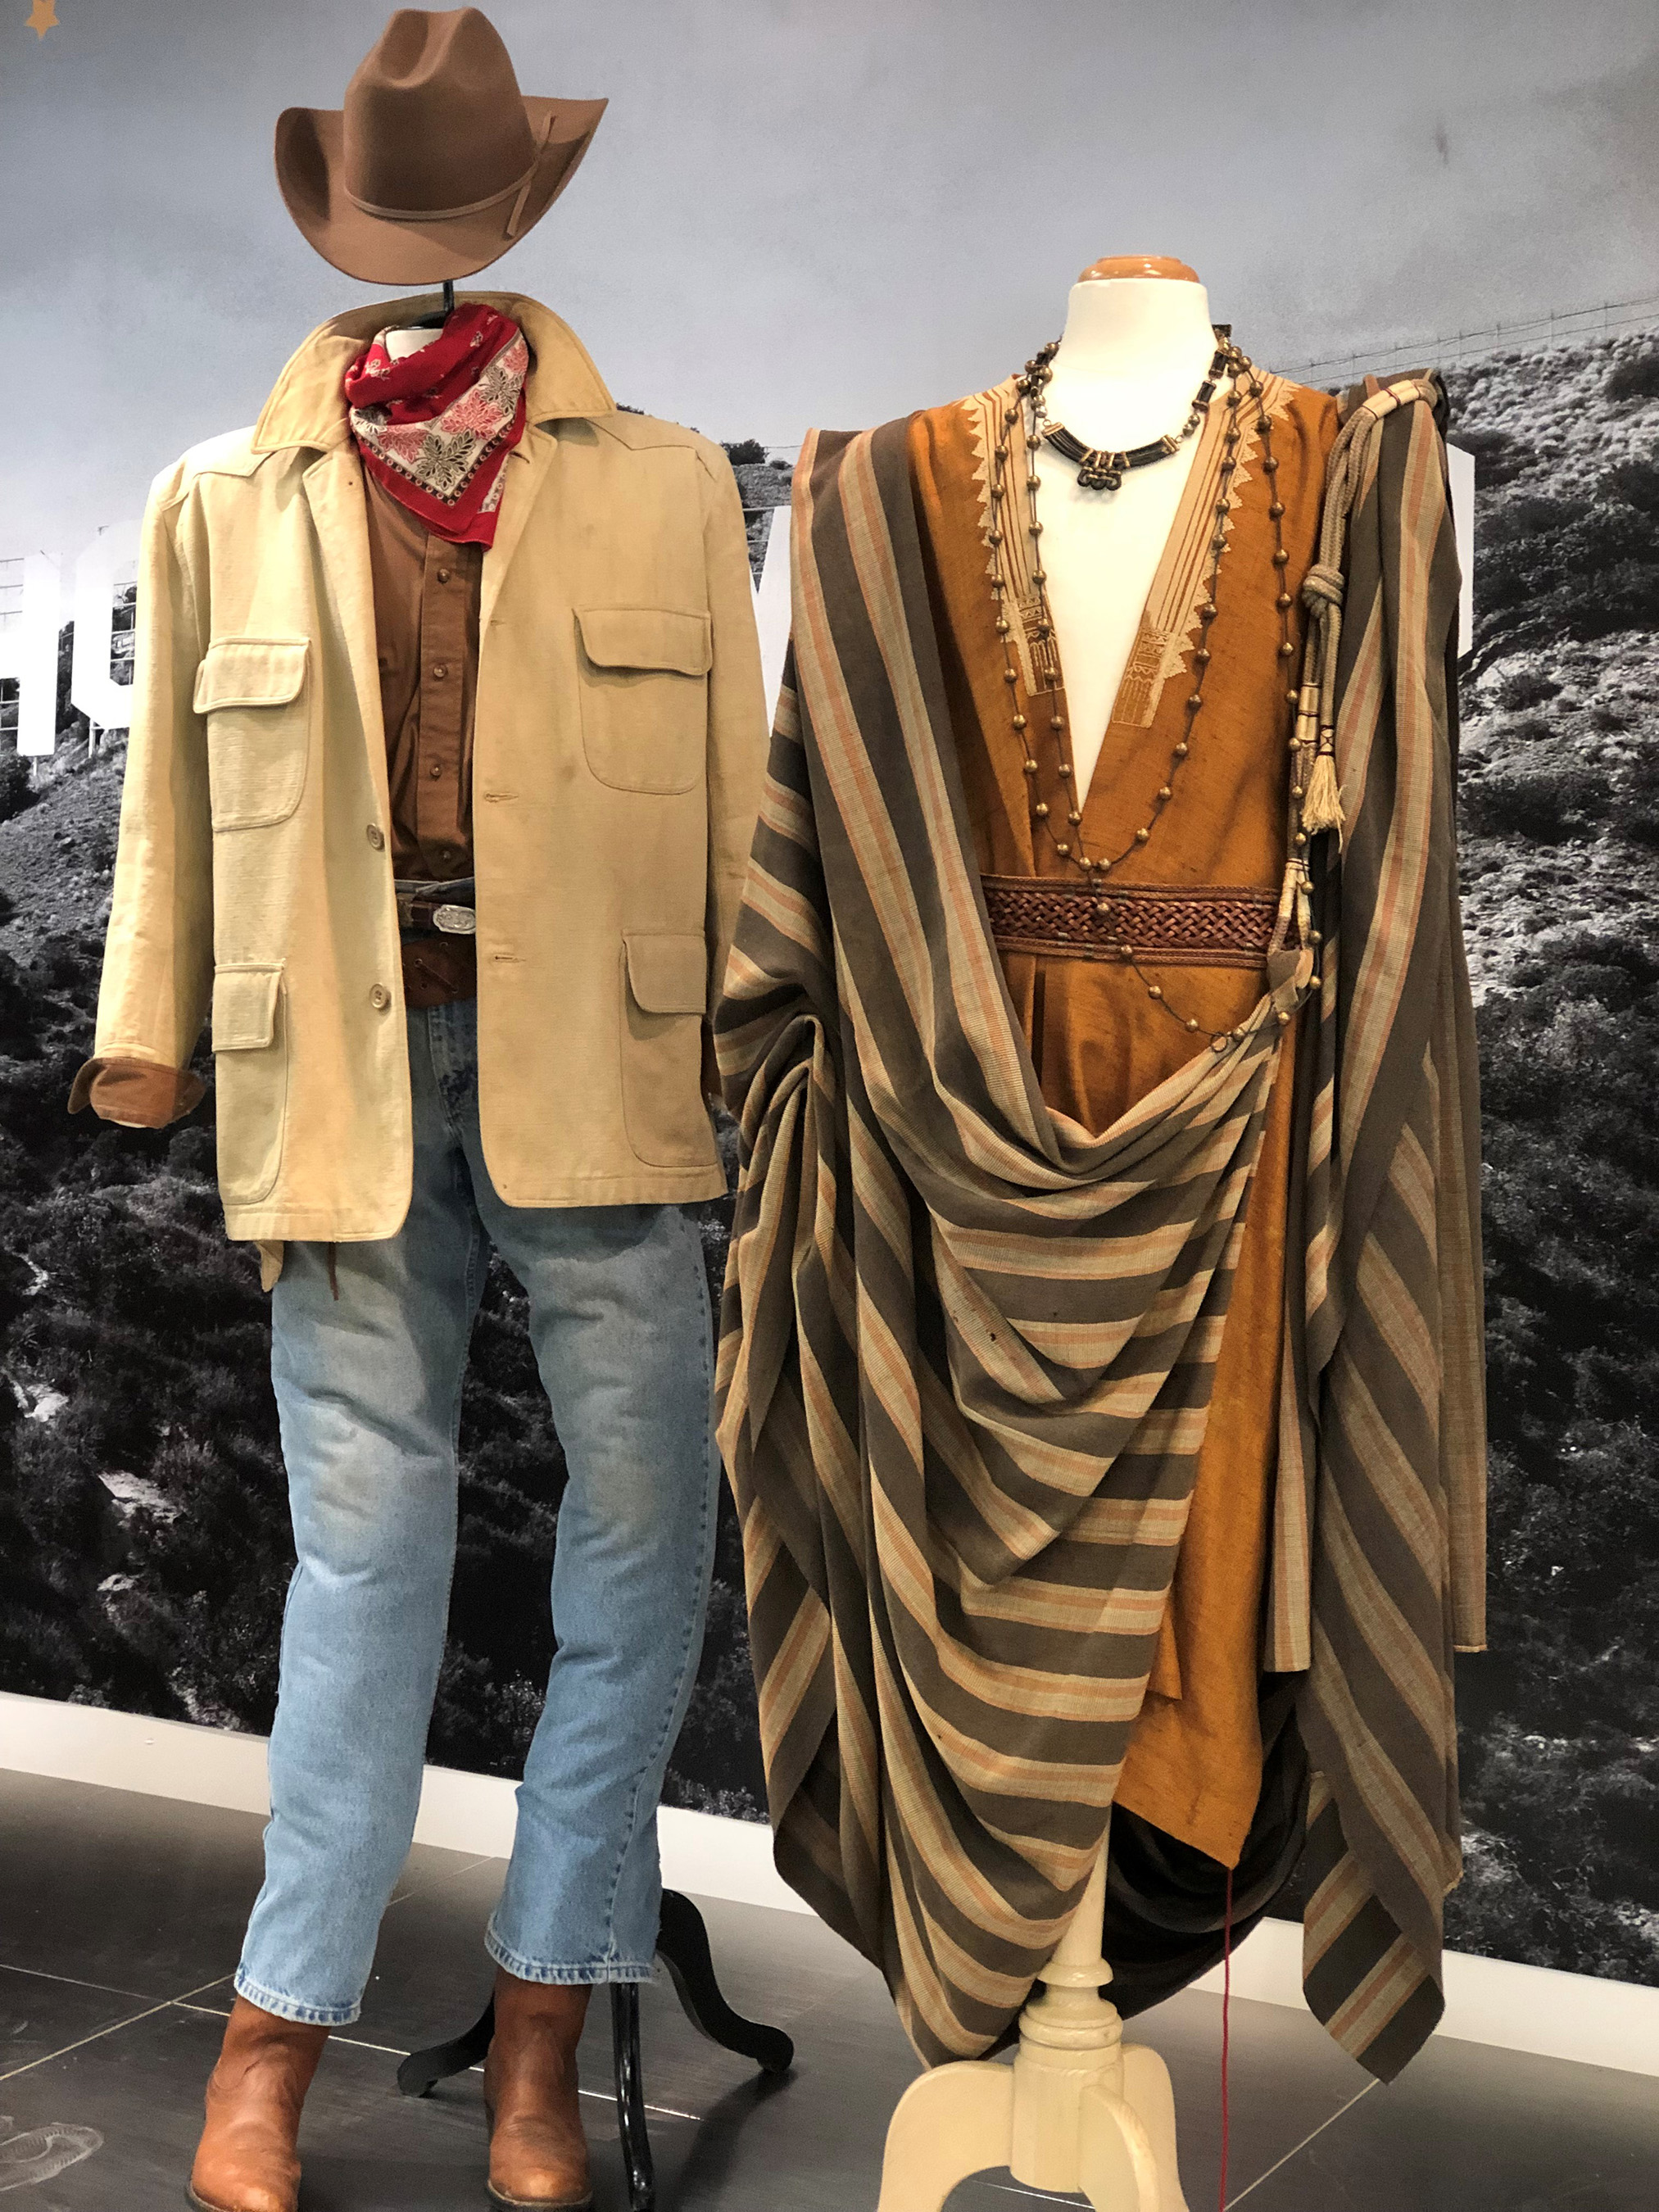 Gene London Costume Exhibit Image 1